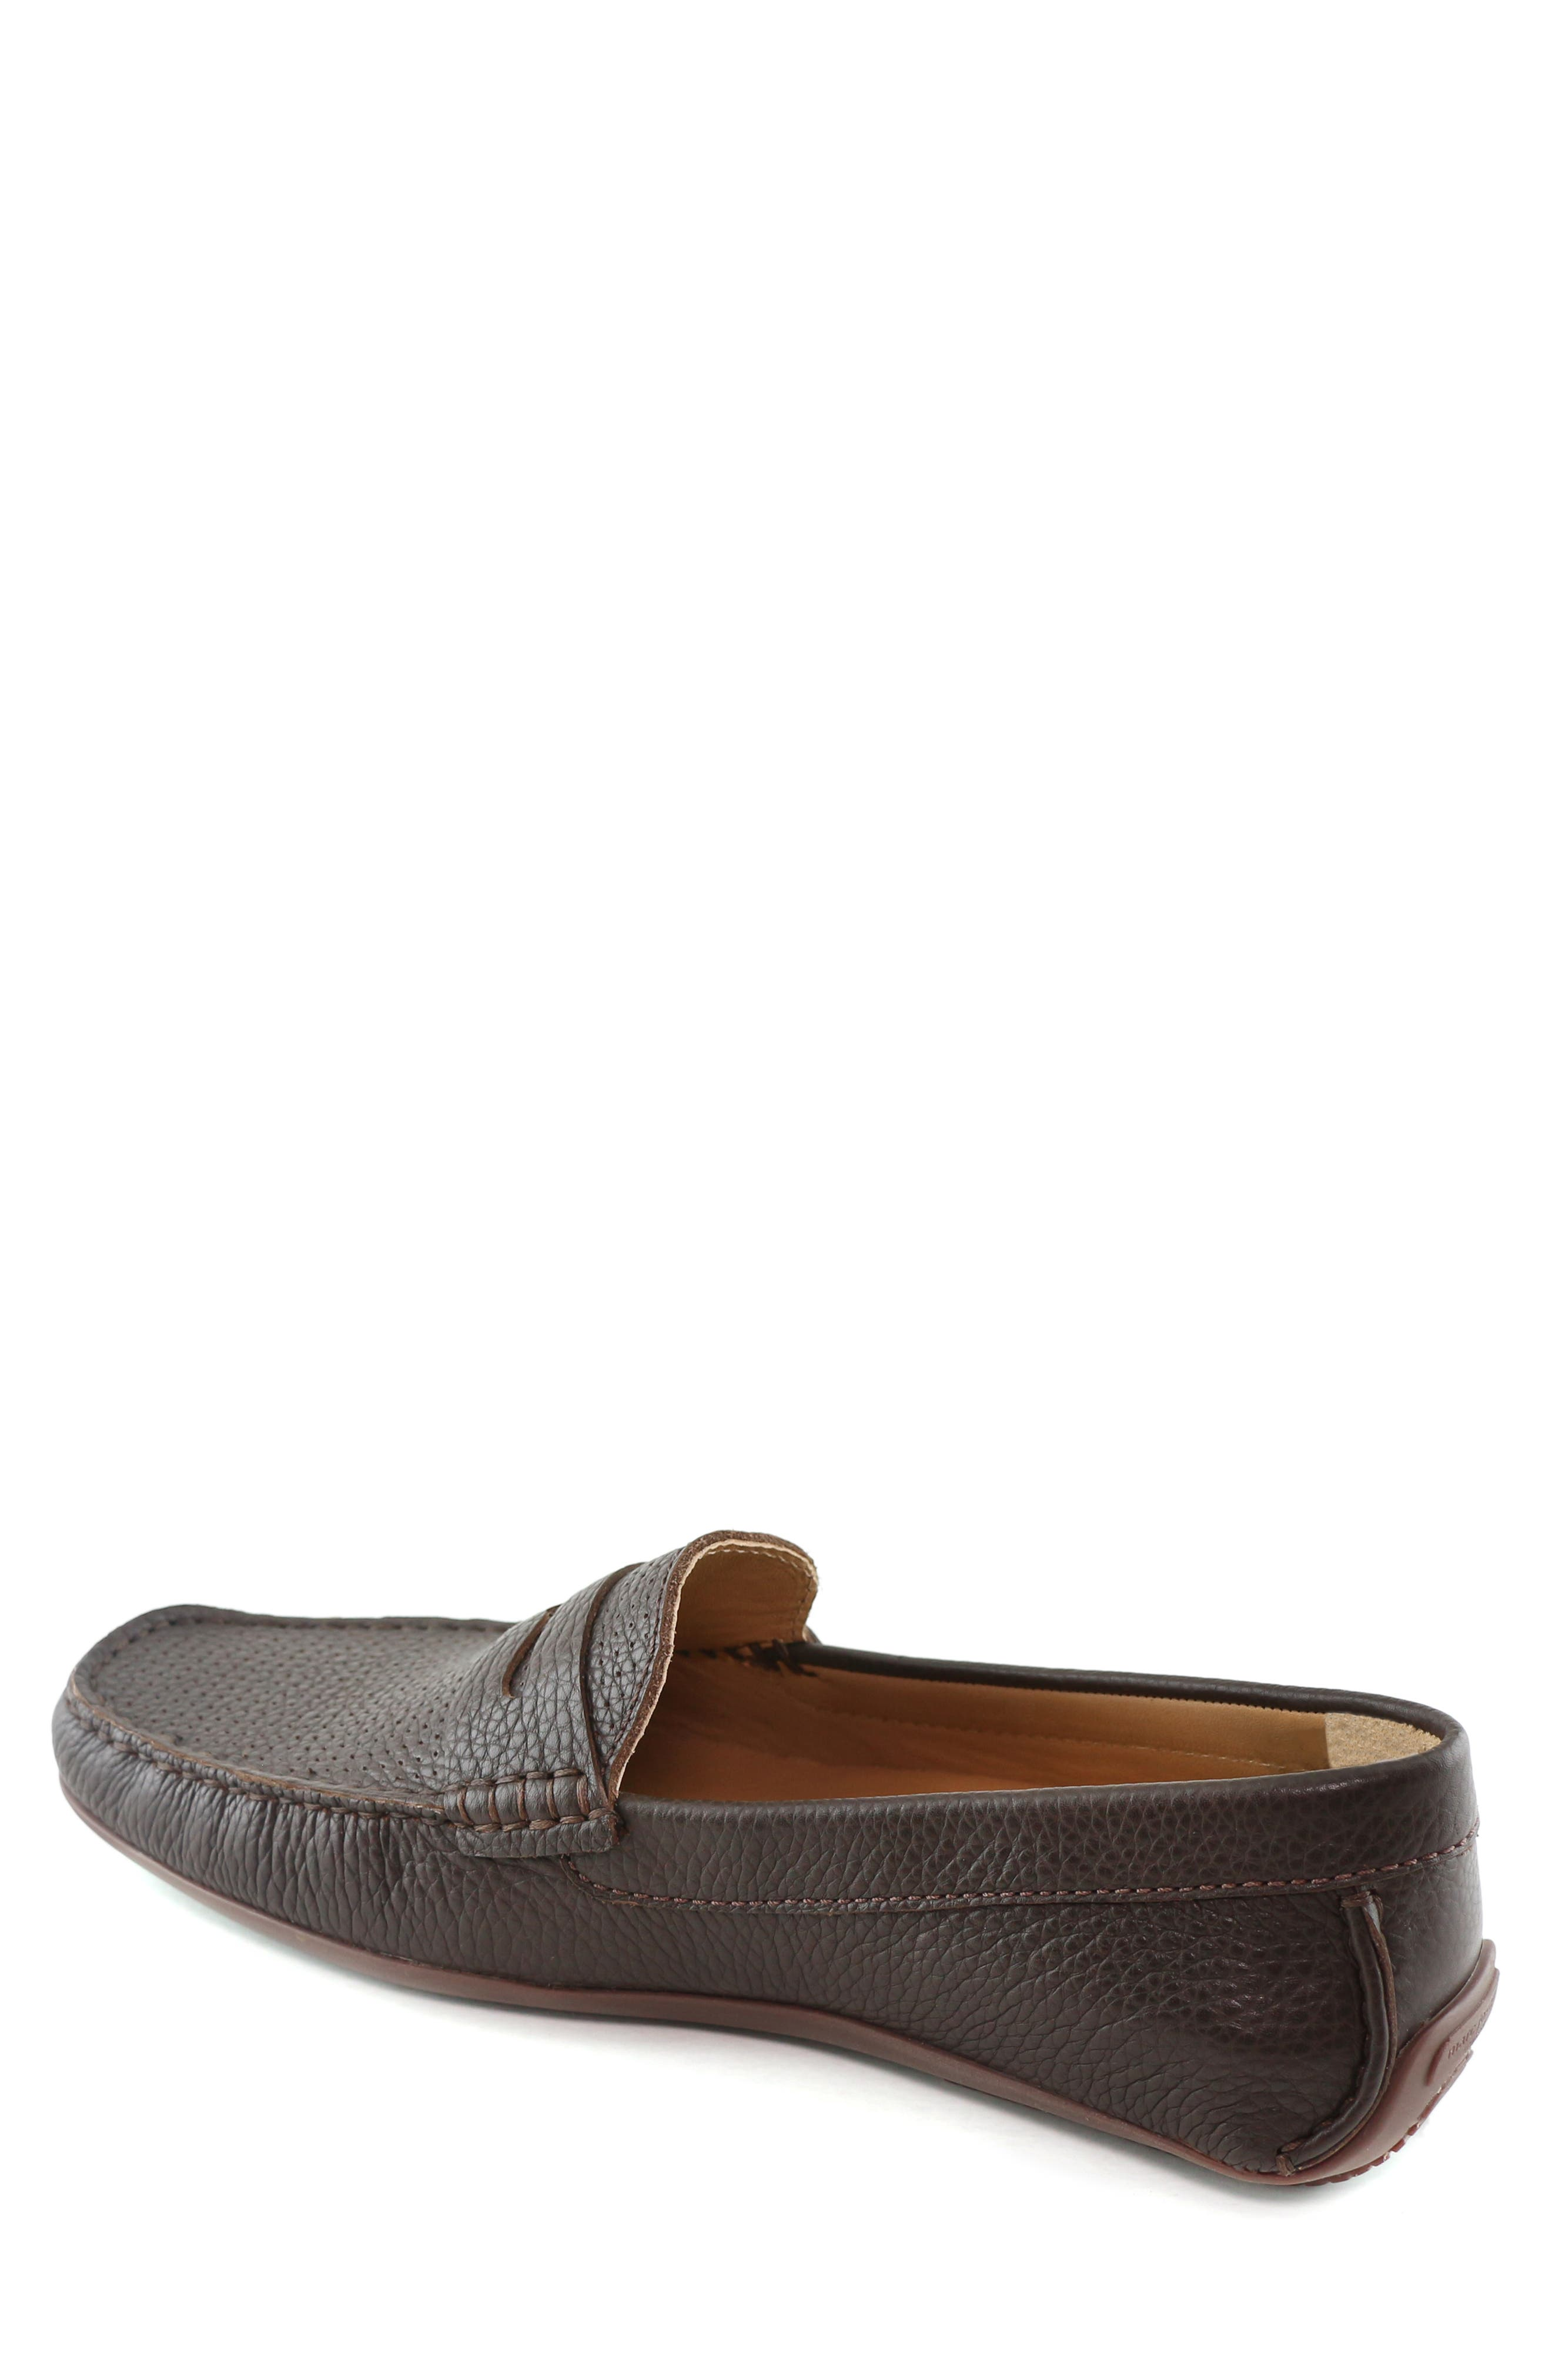 MARC JOSEPH NEW YORK, 'Union Street' Penny Loafer, Alternate thumbnail 2, color, BROWN GRAINY LEATHER